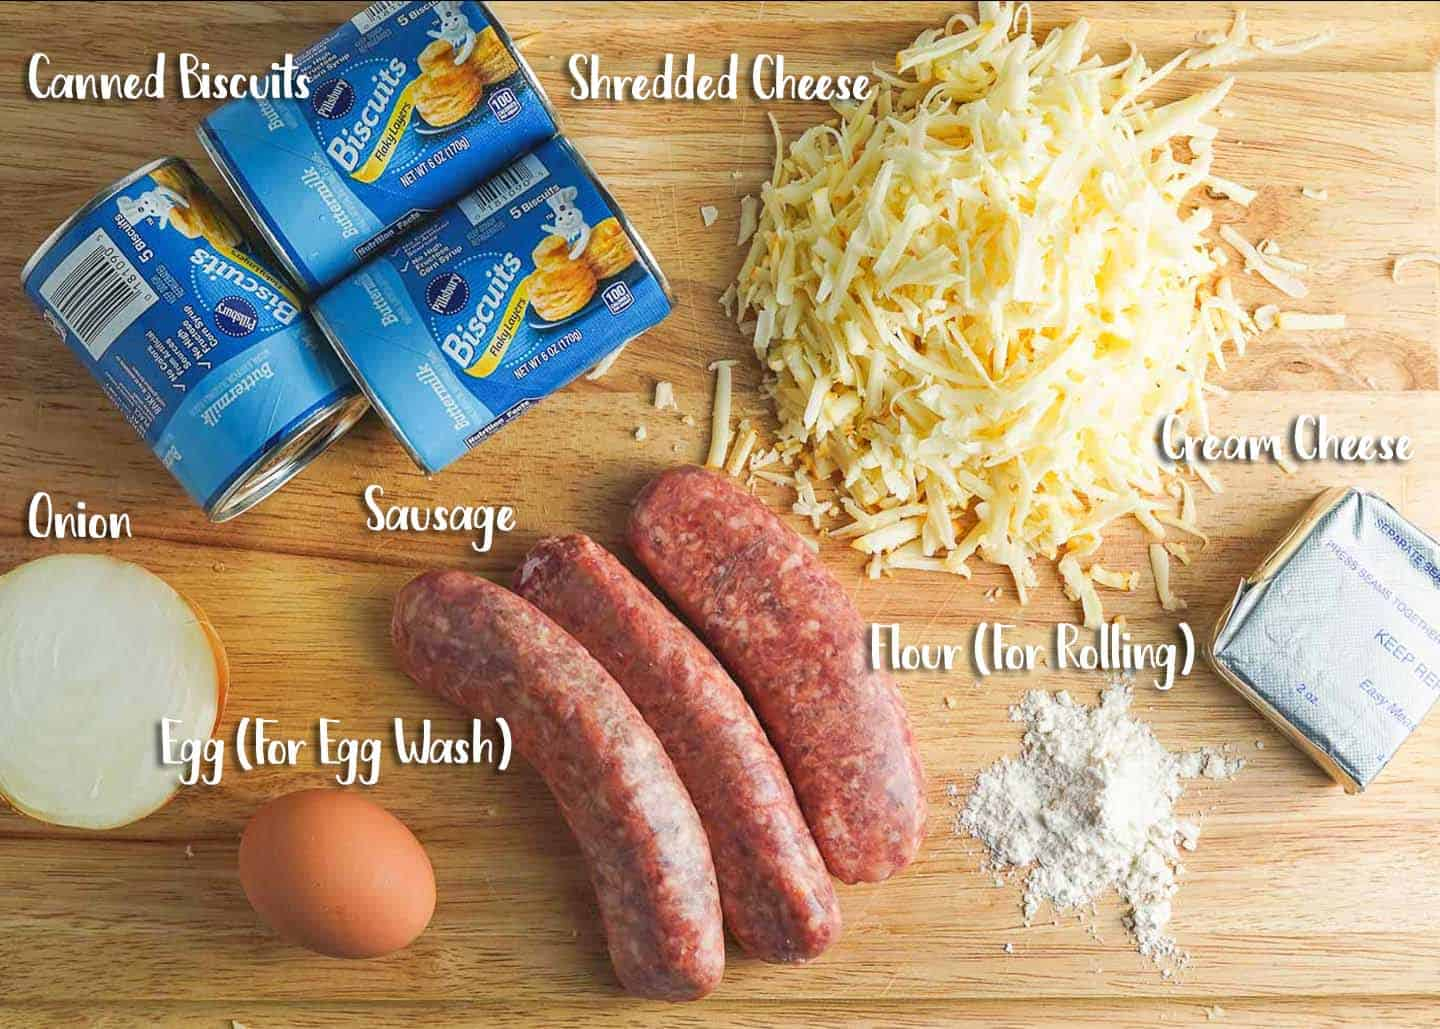 Sausage and Cheese Turnovers Ingredients